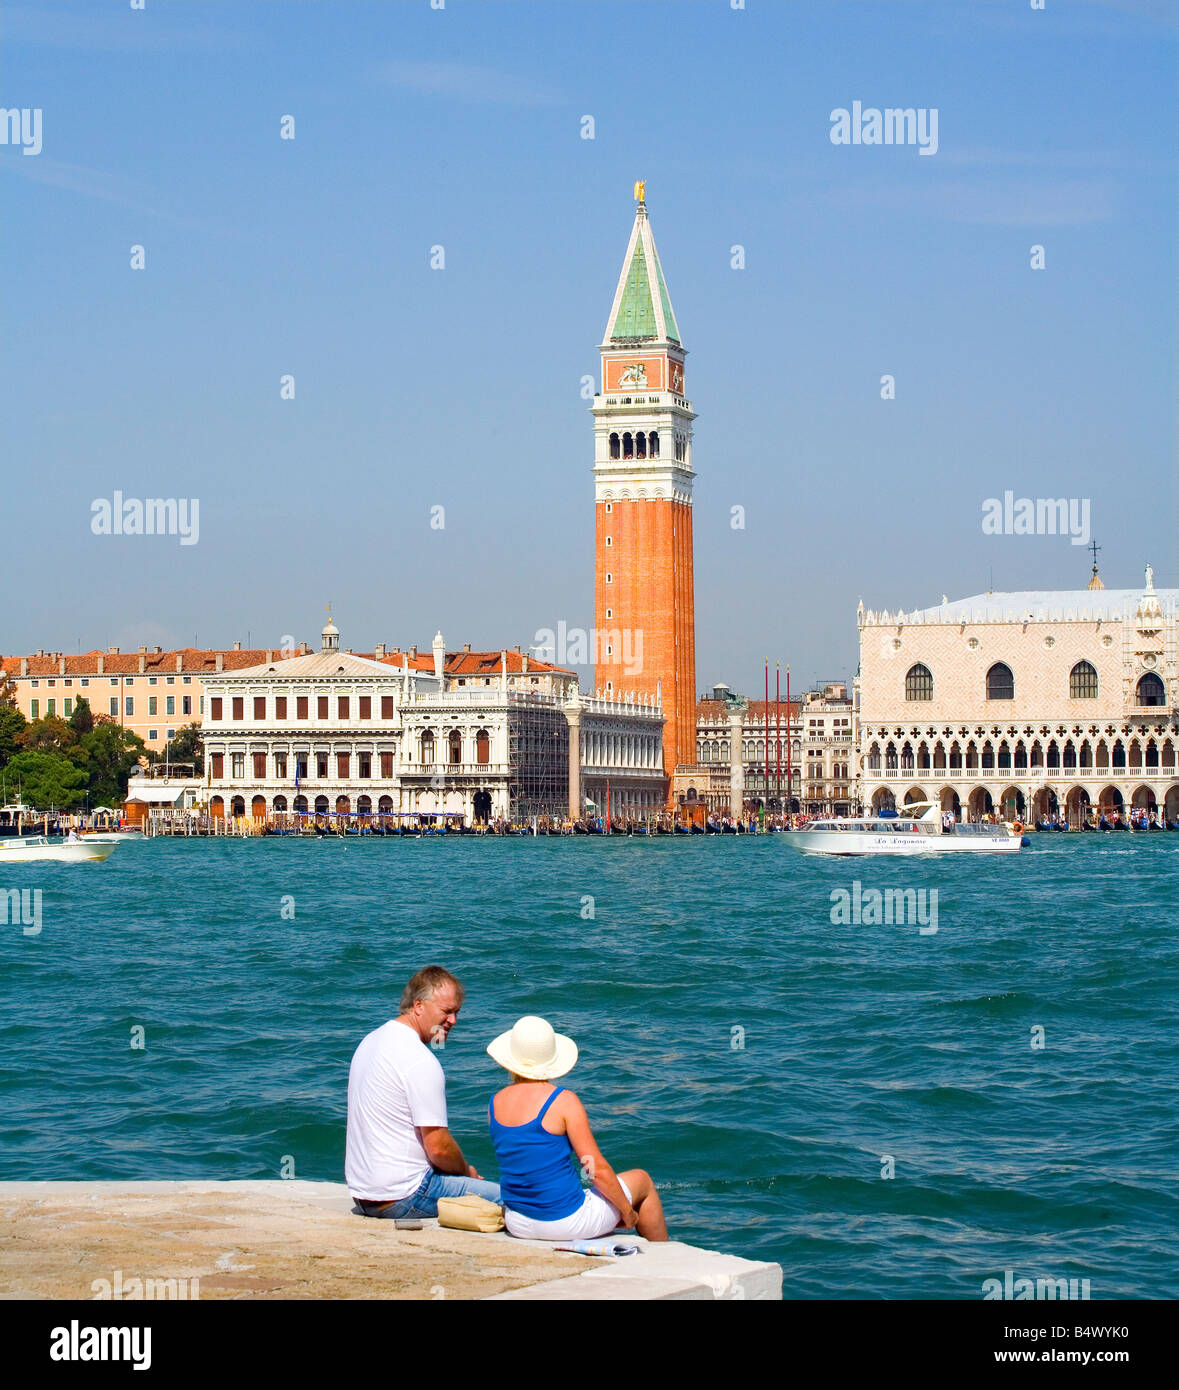 Doges Palace and Campanile in St Marks Square Venice Italy - Stock Image